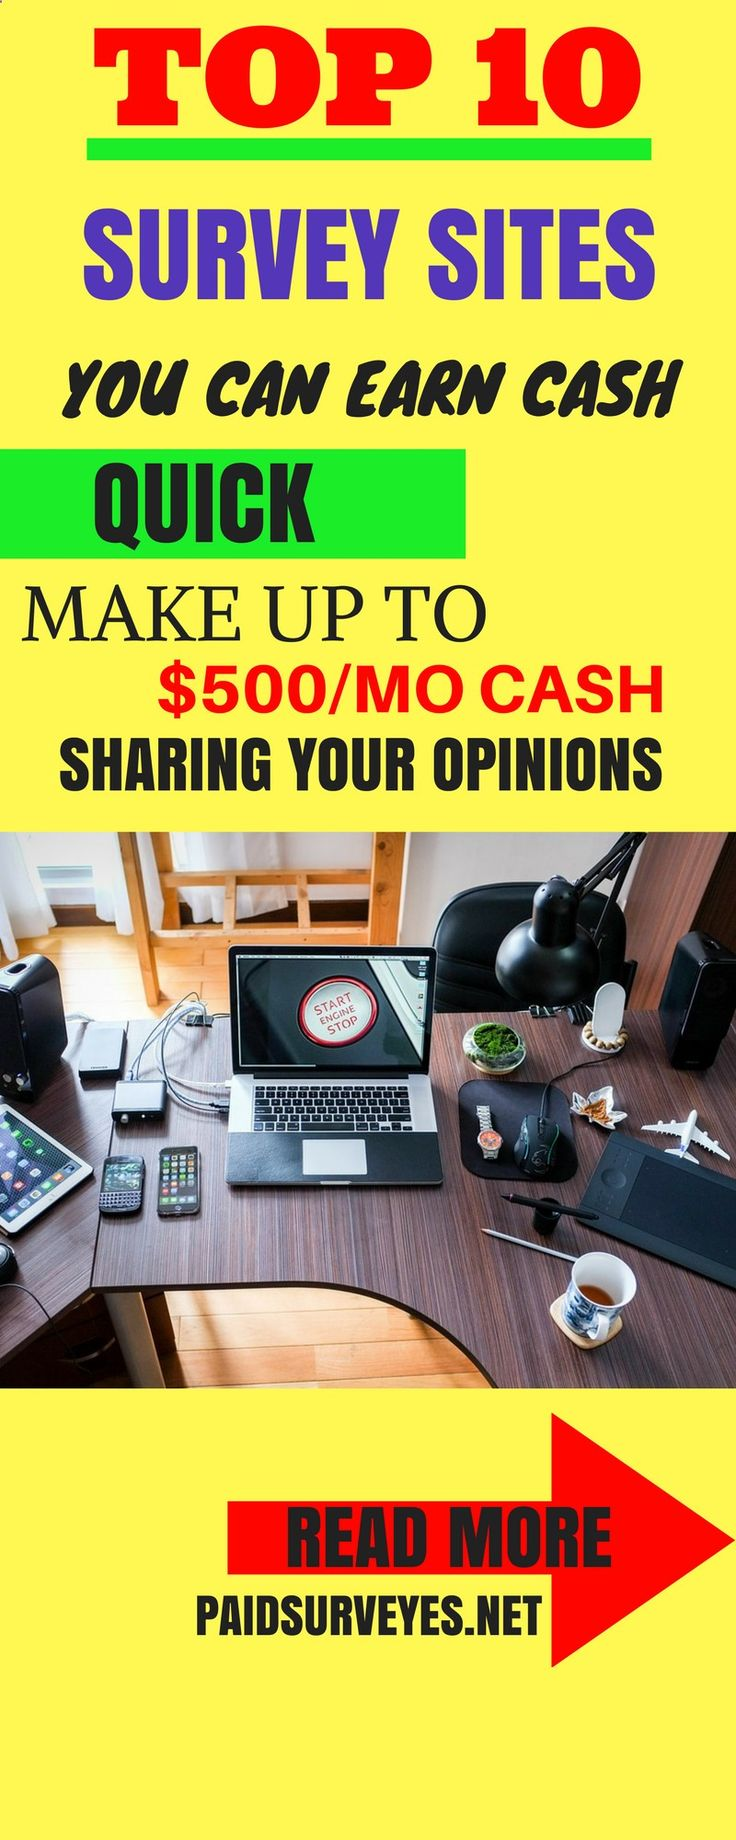 Copy Paste Earn Money - Paid surveys for cash are another way to earn money online and working from home. Learn how to earn extra money by taking surveys working from home. Check us out for more You're copy pasting anyway...Get paid for it.